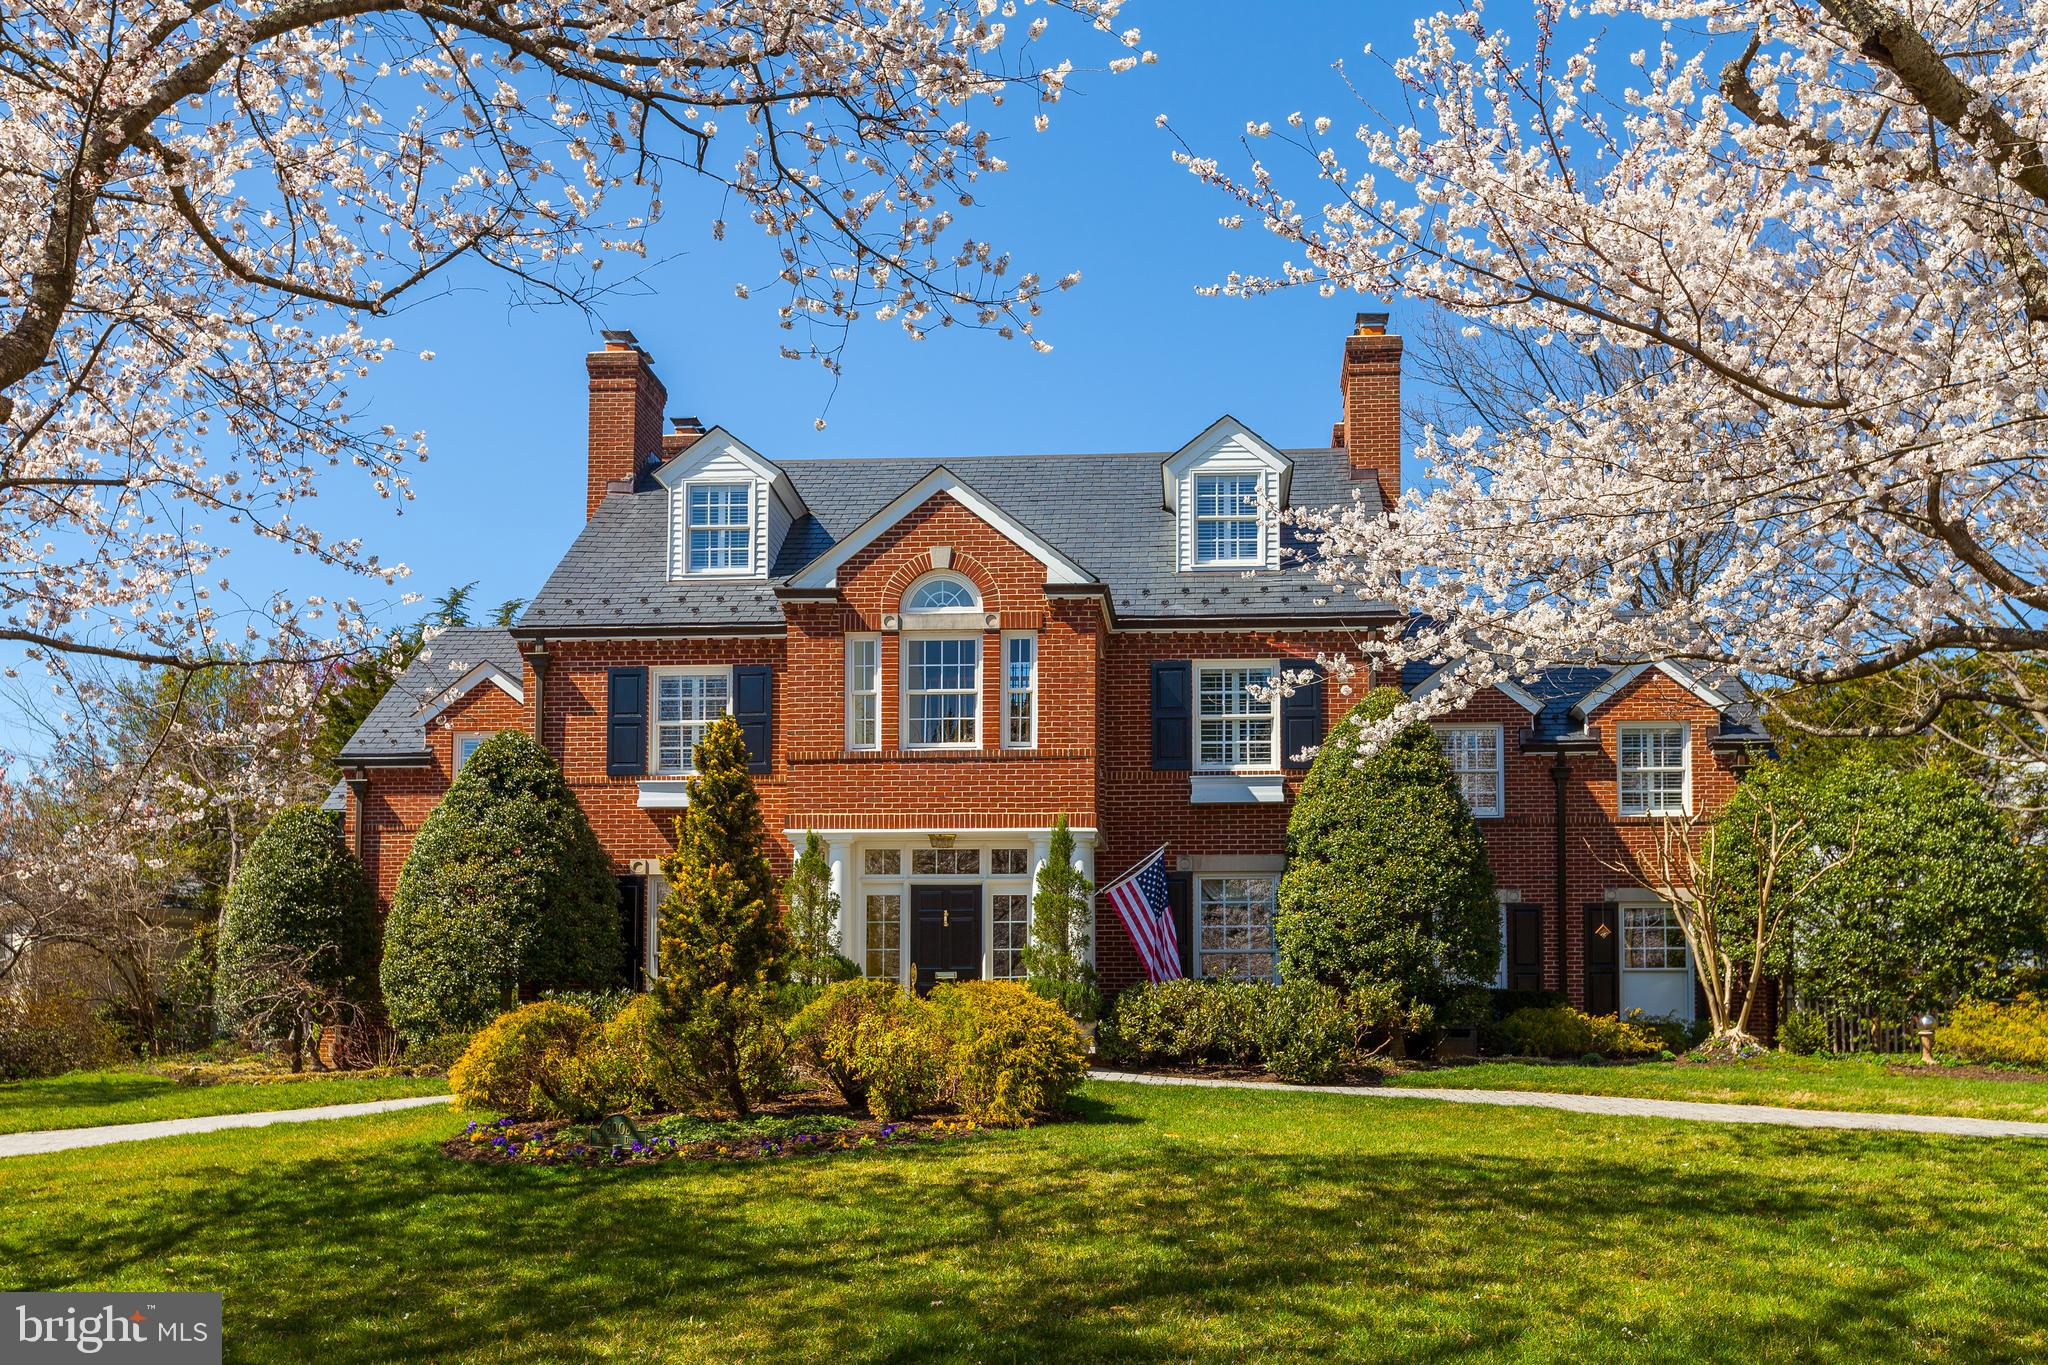 6008 KENNEDY DRIVE, CHEVY CHASE, MD 20815